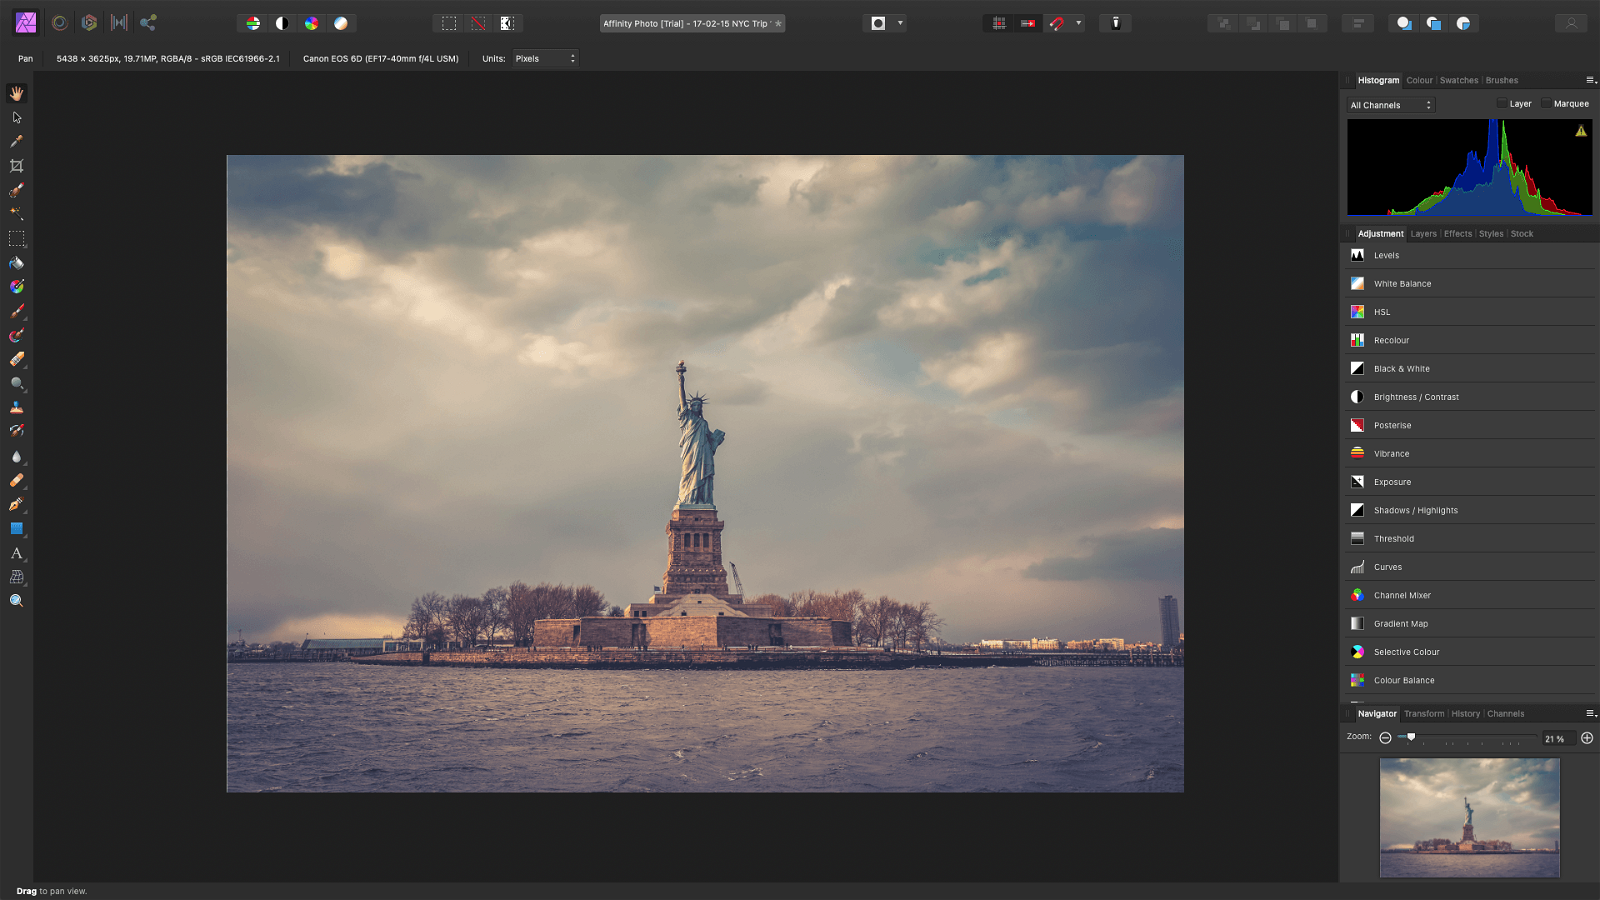 Affinity Photo main screen layout featuring statue of liberty photo